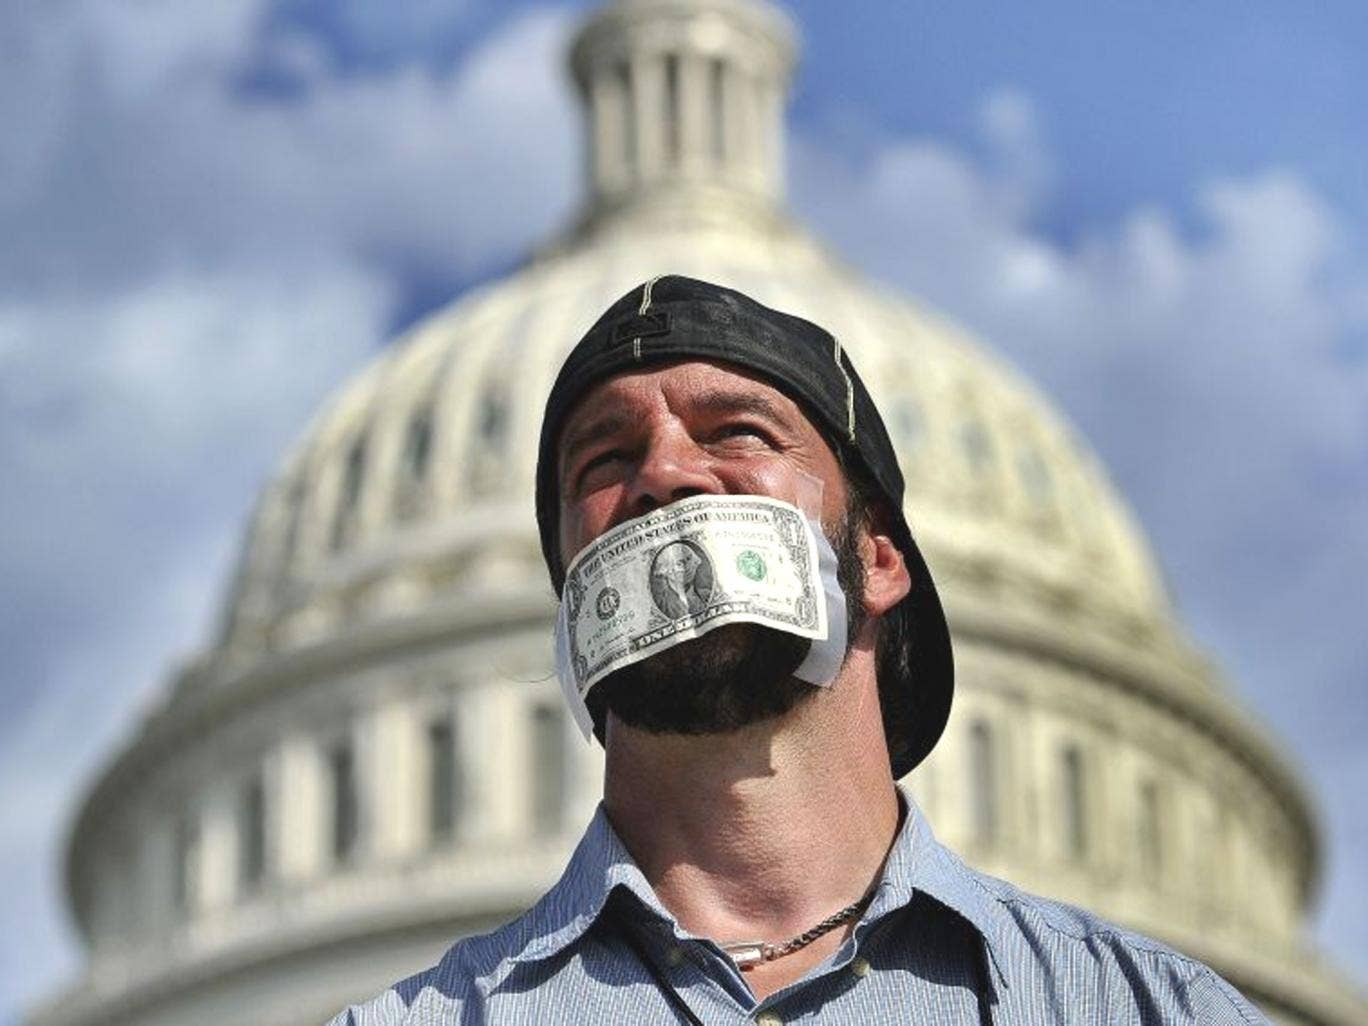 A protester covers his mouth with a dollar bill as he joins others in a demonstration in Washington, DC